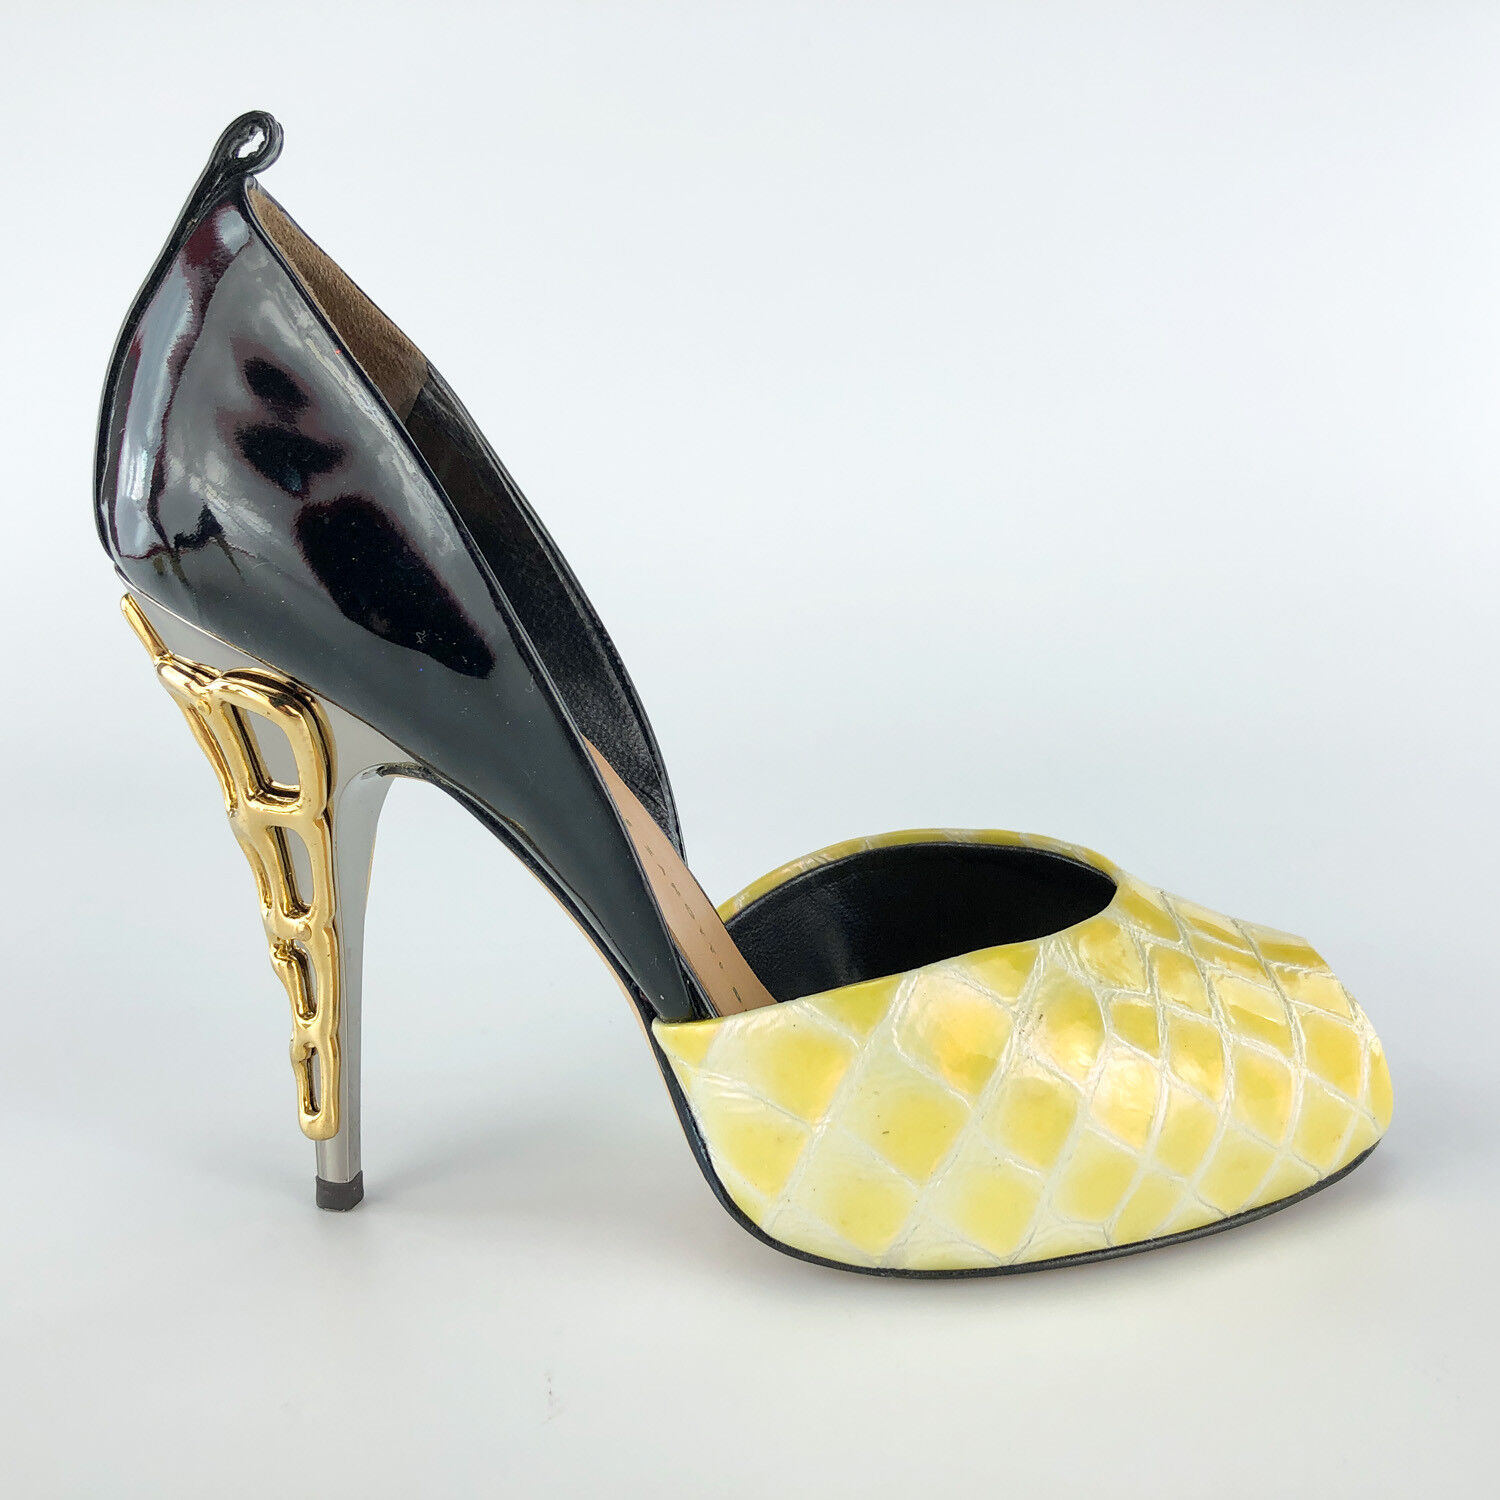 Giuseppe Zanotti Womens High Heels 5.5 Peep Toe Black Yellow Yellow Yellow Stiletto gold Pump 876bf9